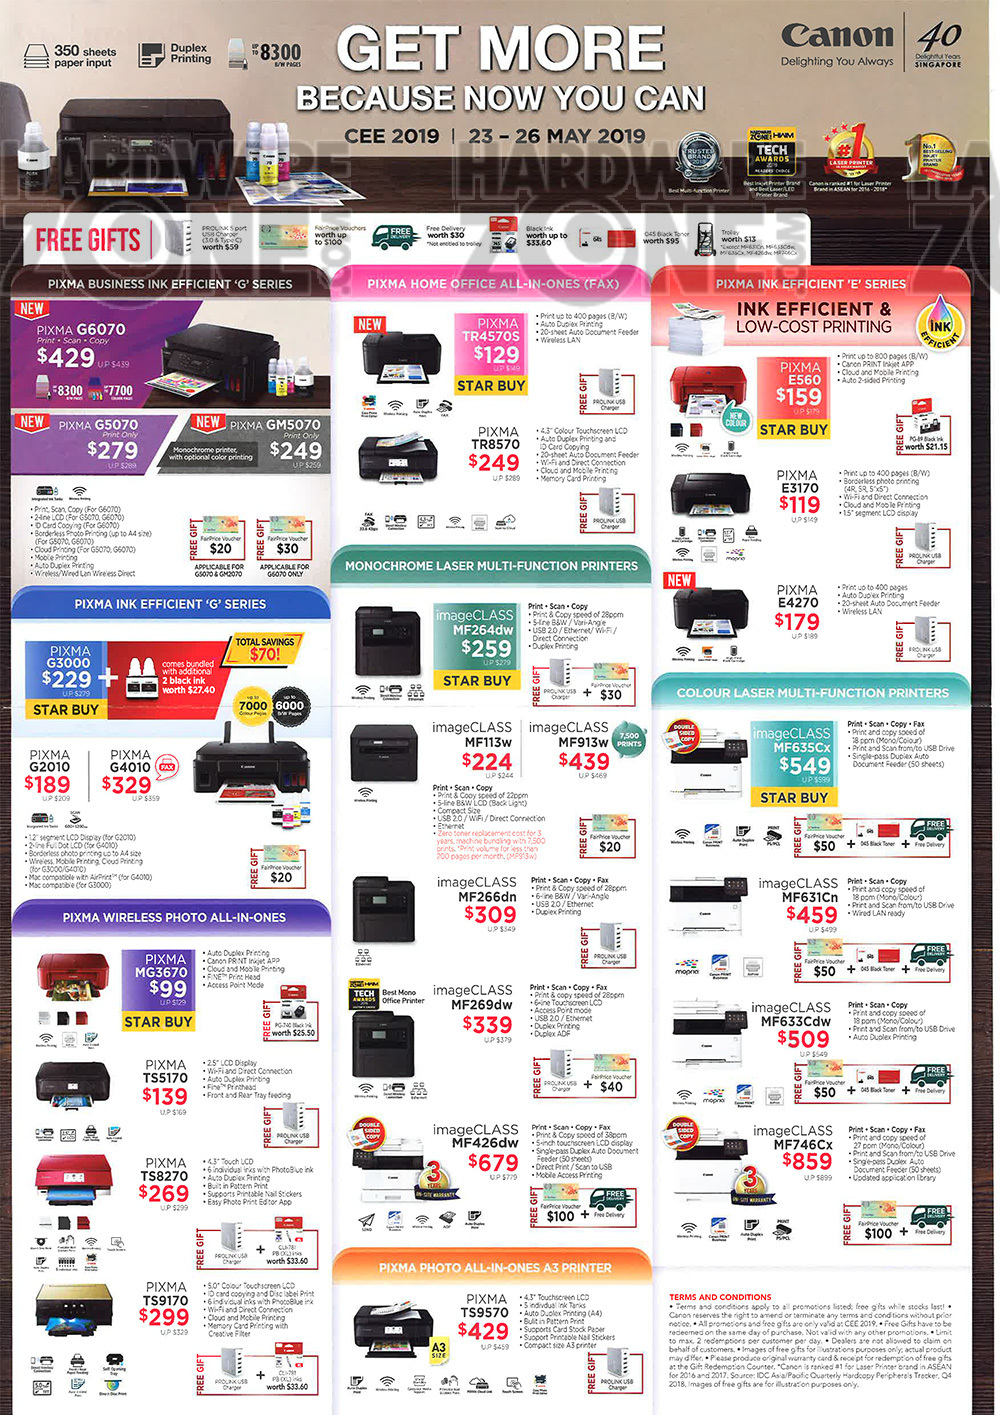 Canon Printers - pg 2 Brochures from CEE 2019 on Tech Show